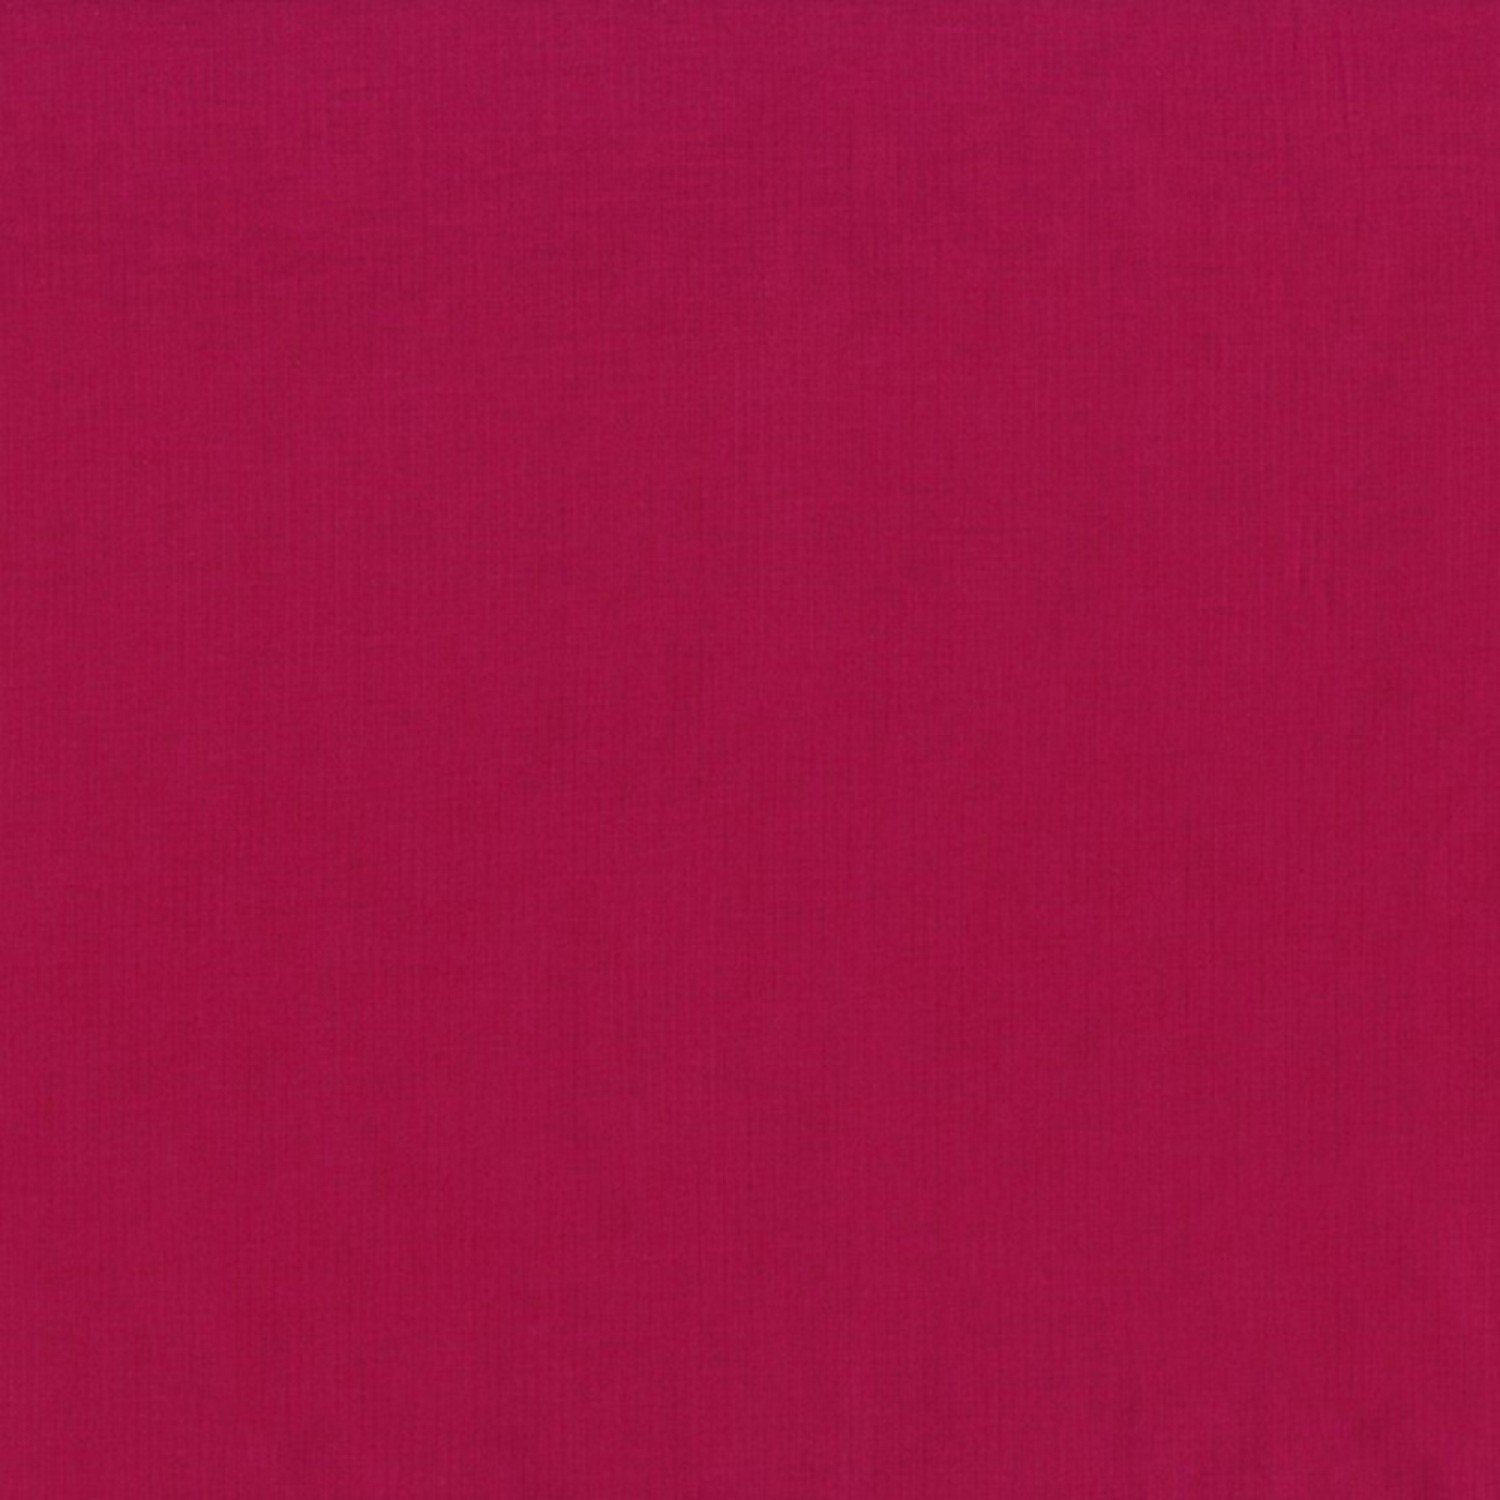 Cotton Couture Fuschia